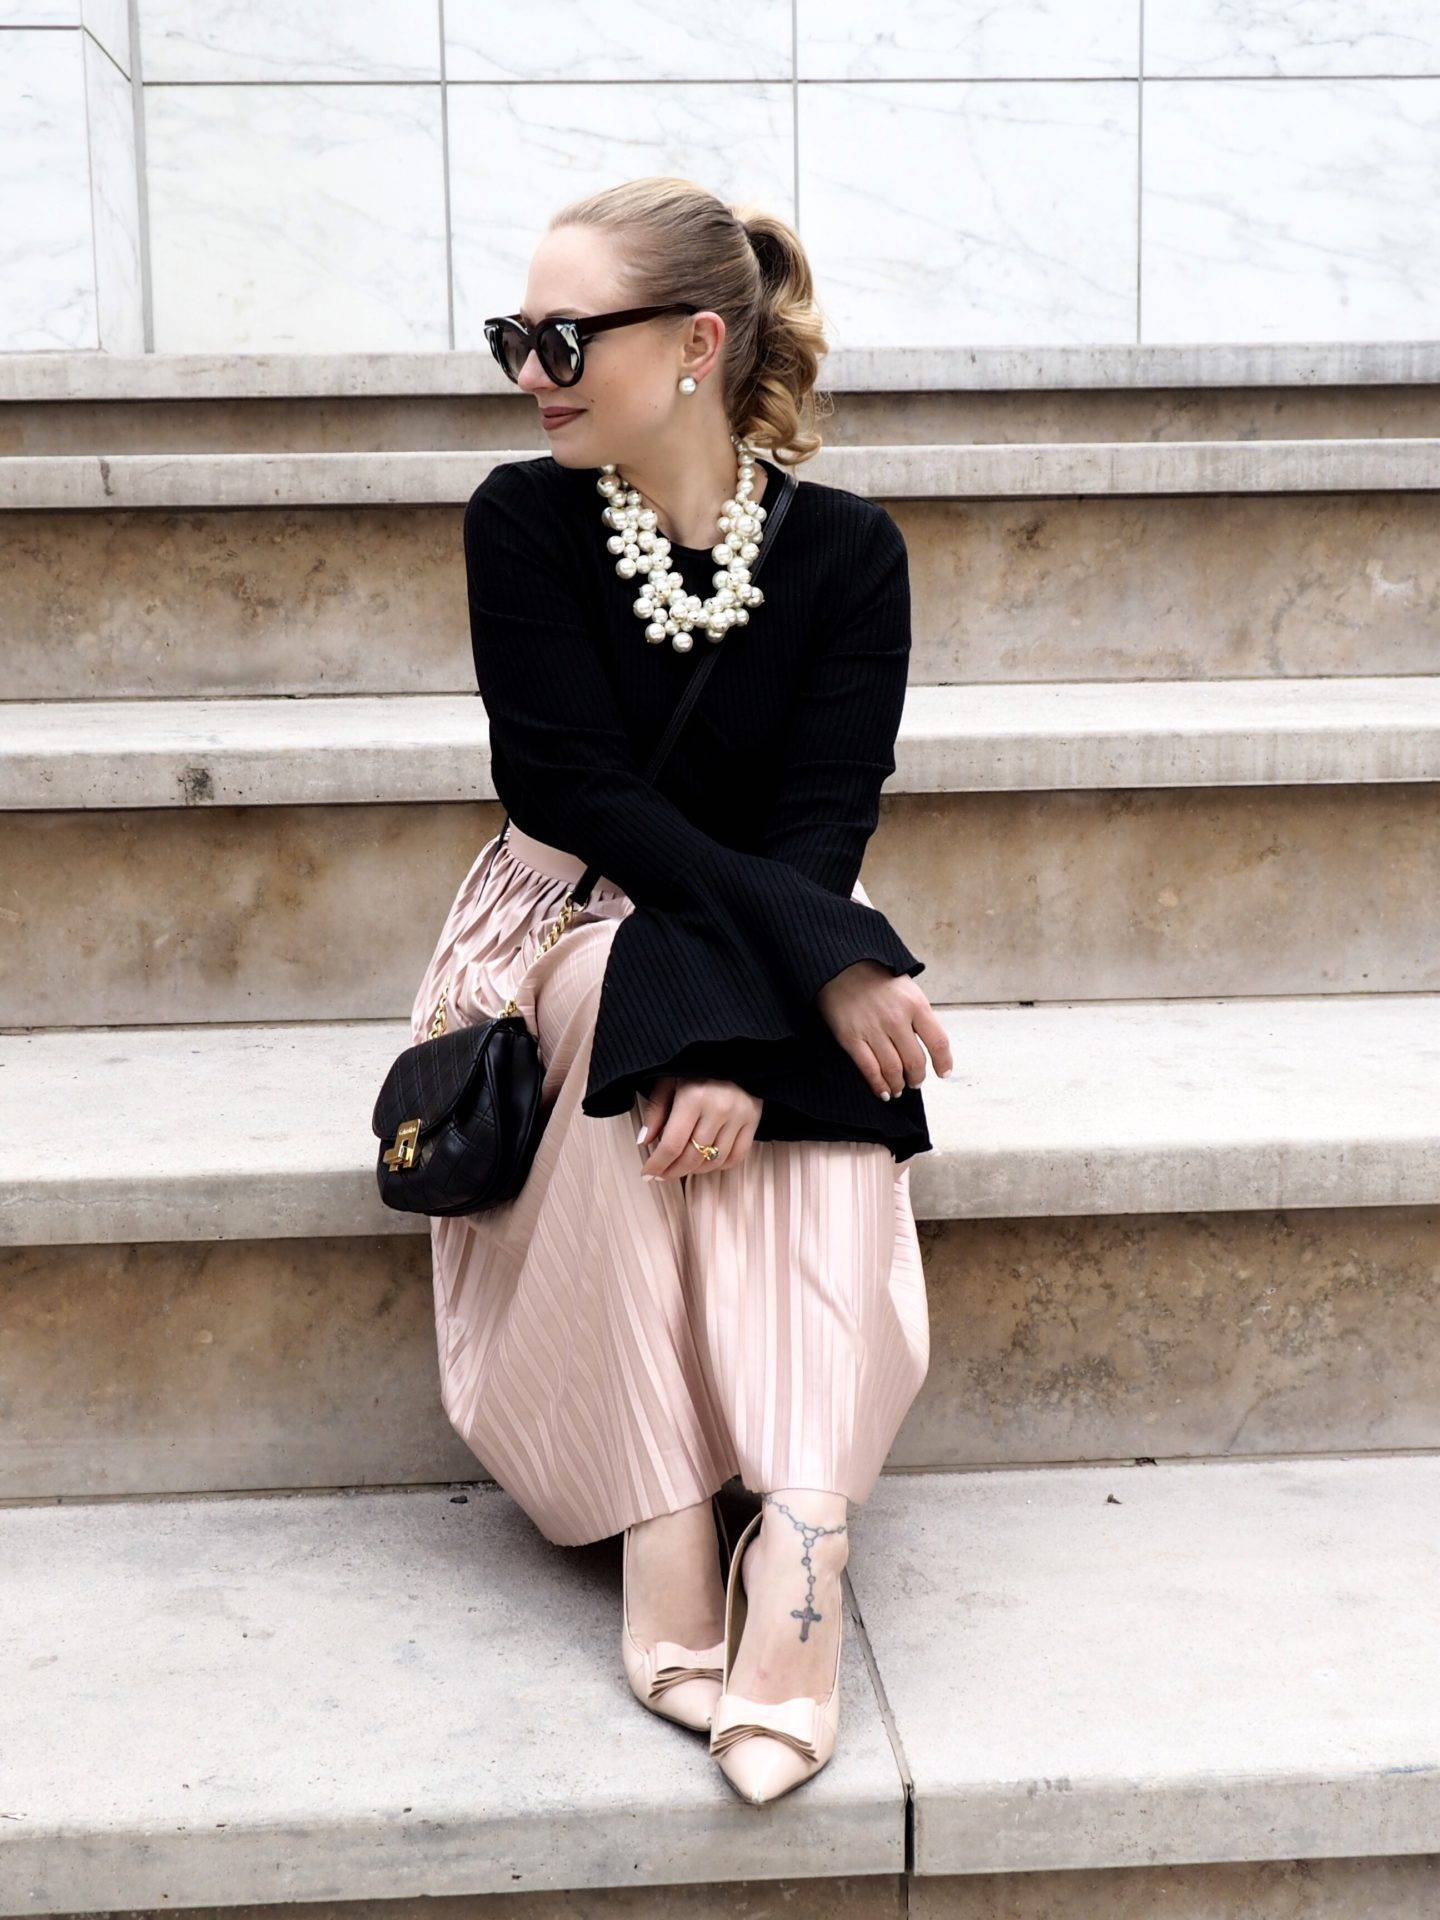 Bell Sleeves & Blush Tones